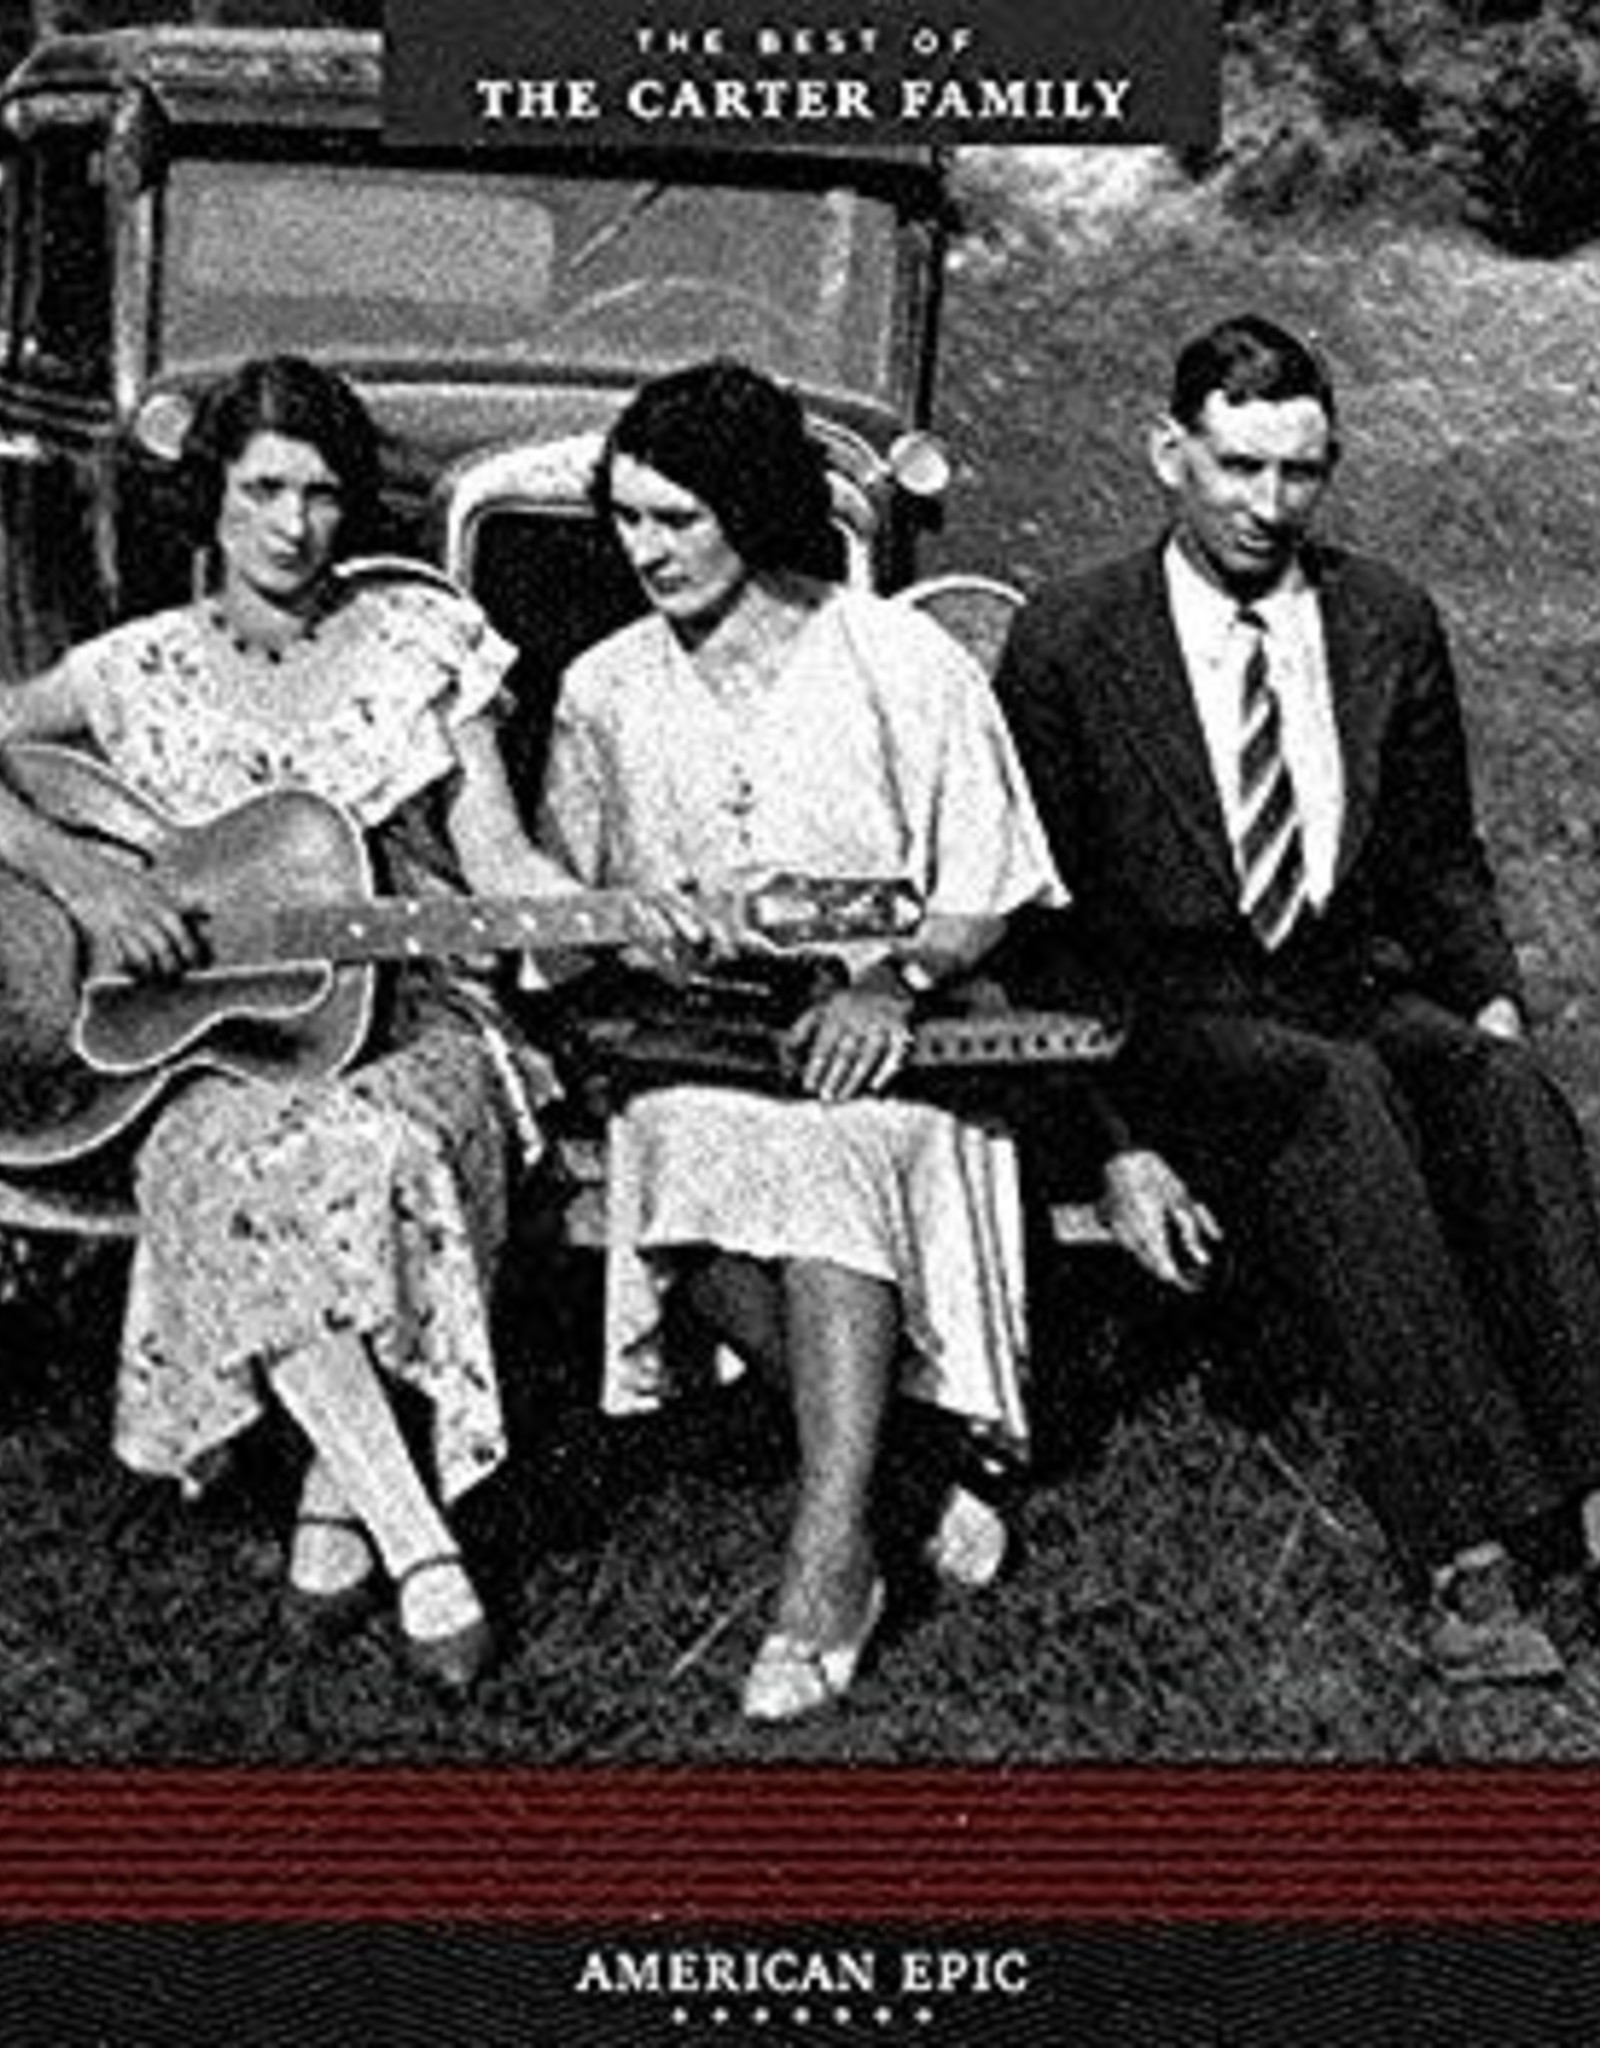 American Epic - The Best Of The Carter Family